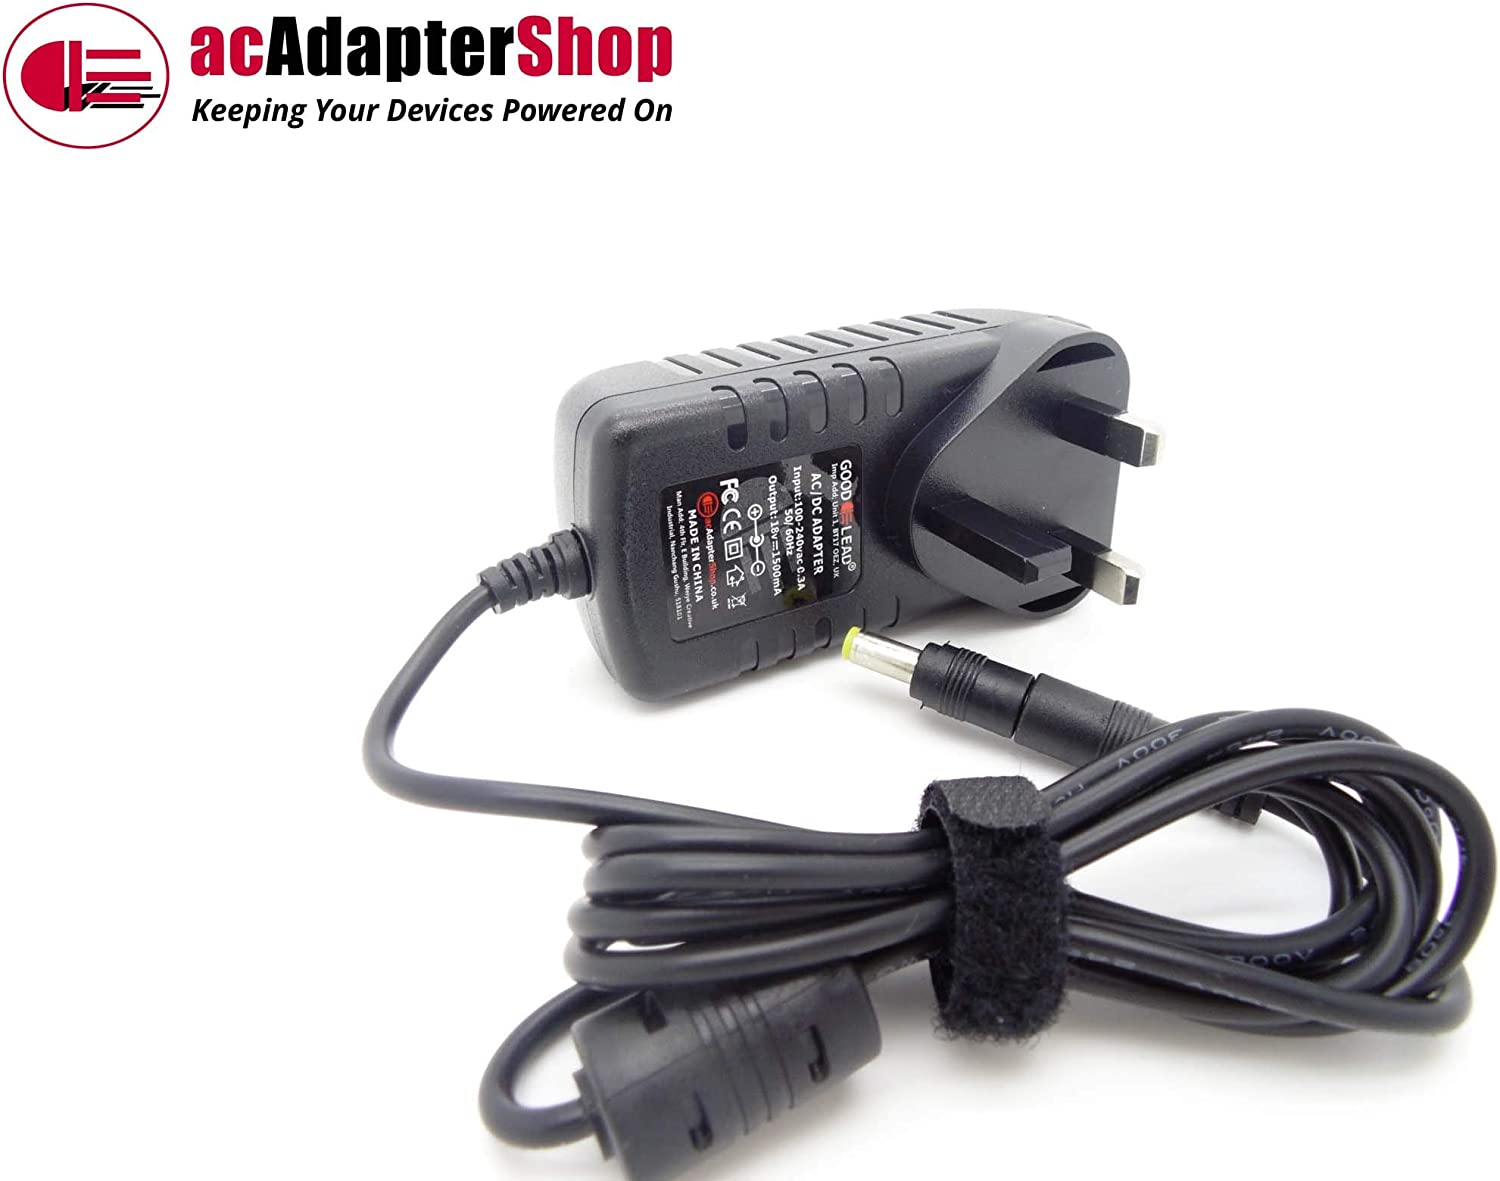 GOOD LEAD Replacement DC 18V Power Supply For Macallister Drill 14 4V COD144V Charger NEW